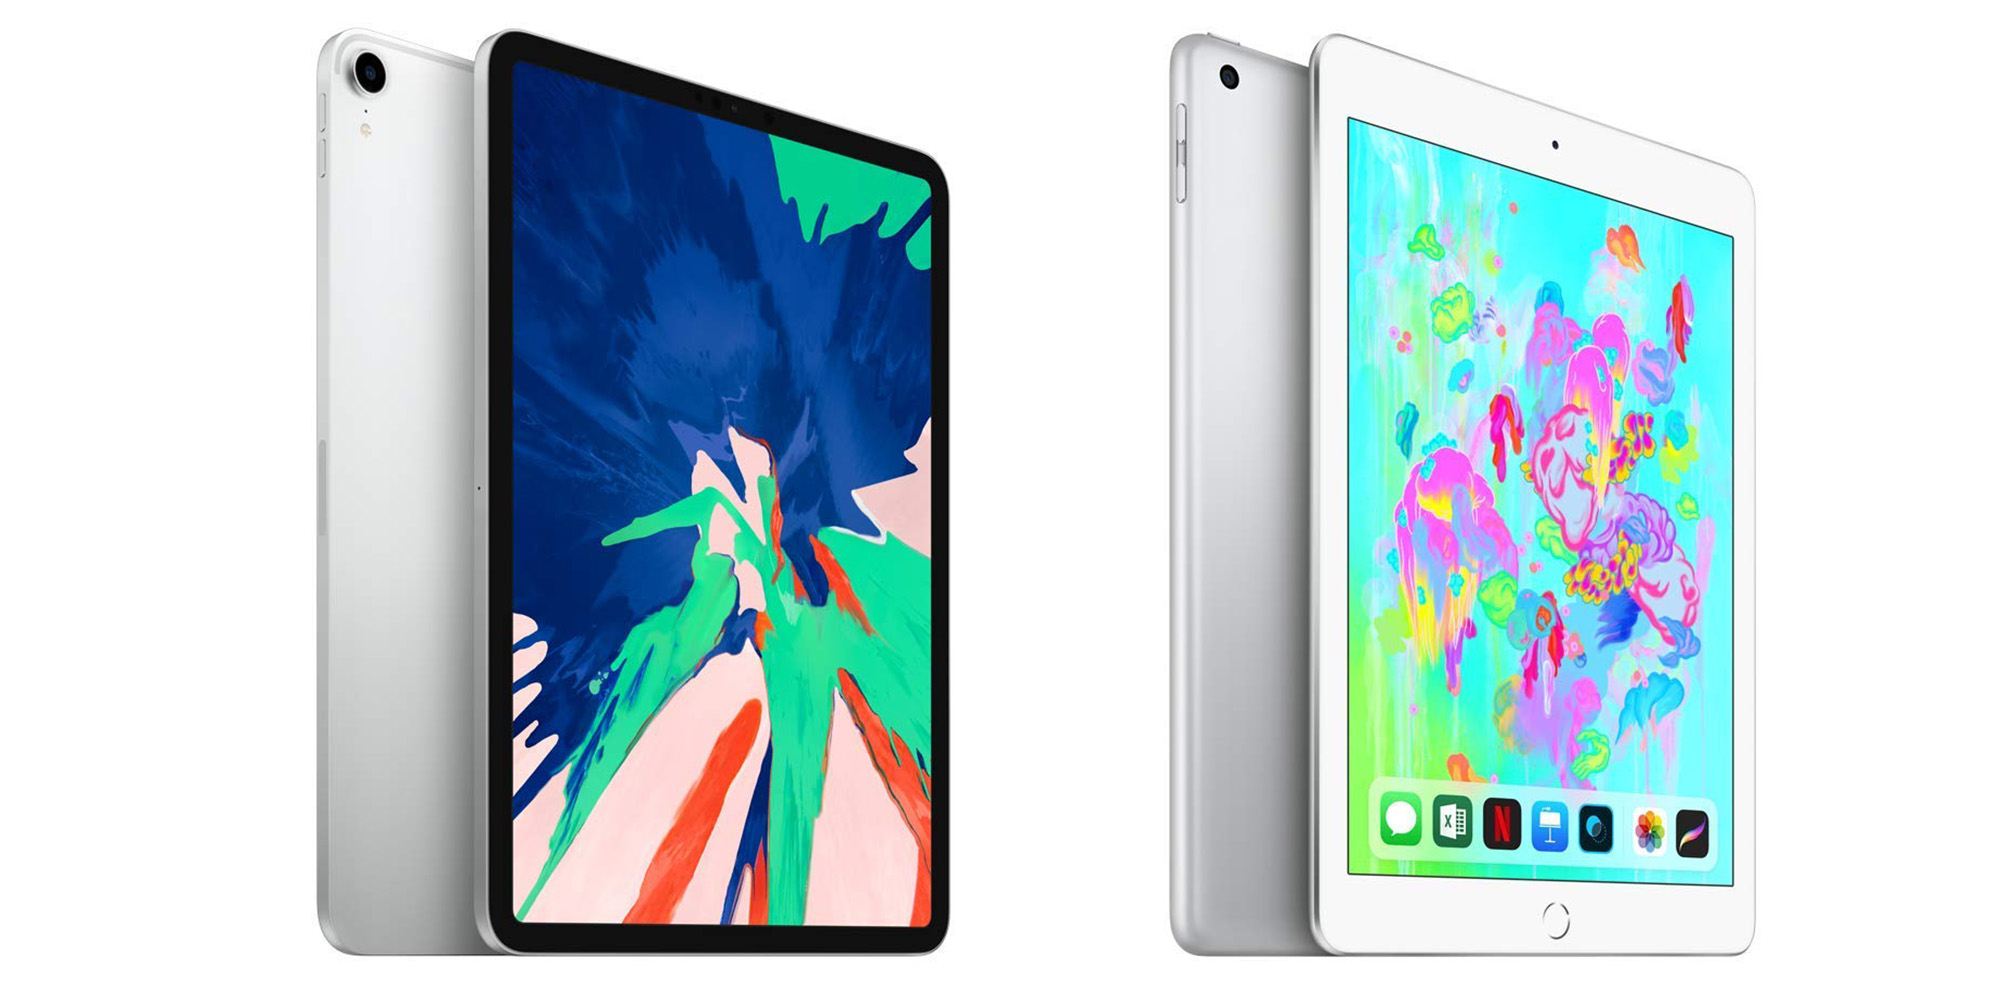 Apple's latest iPad Pro up to $149 off or save up to $99 on 9.7-inch iPad